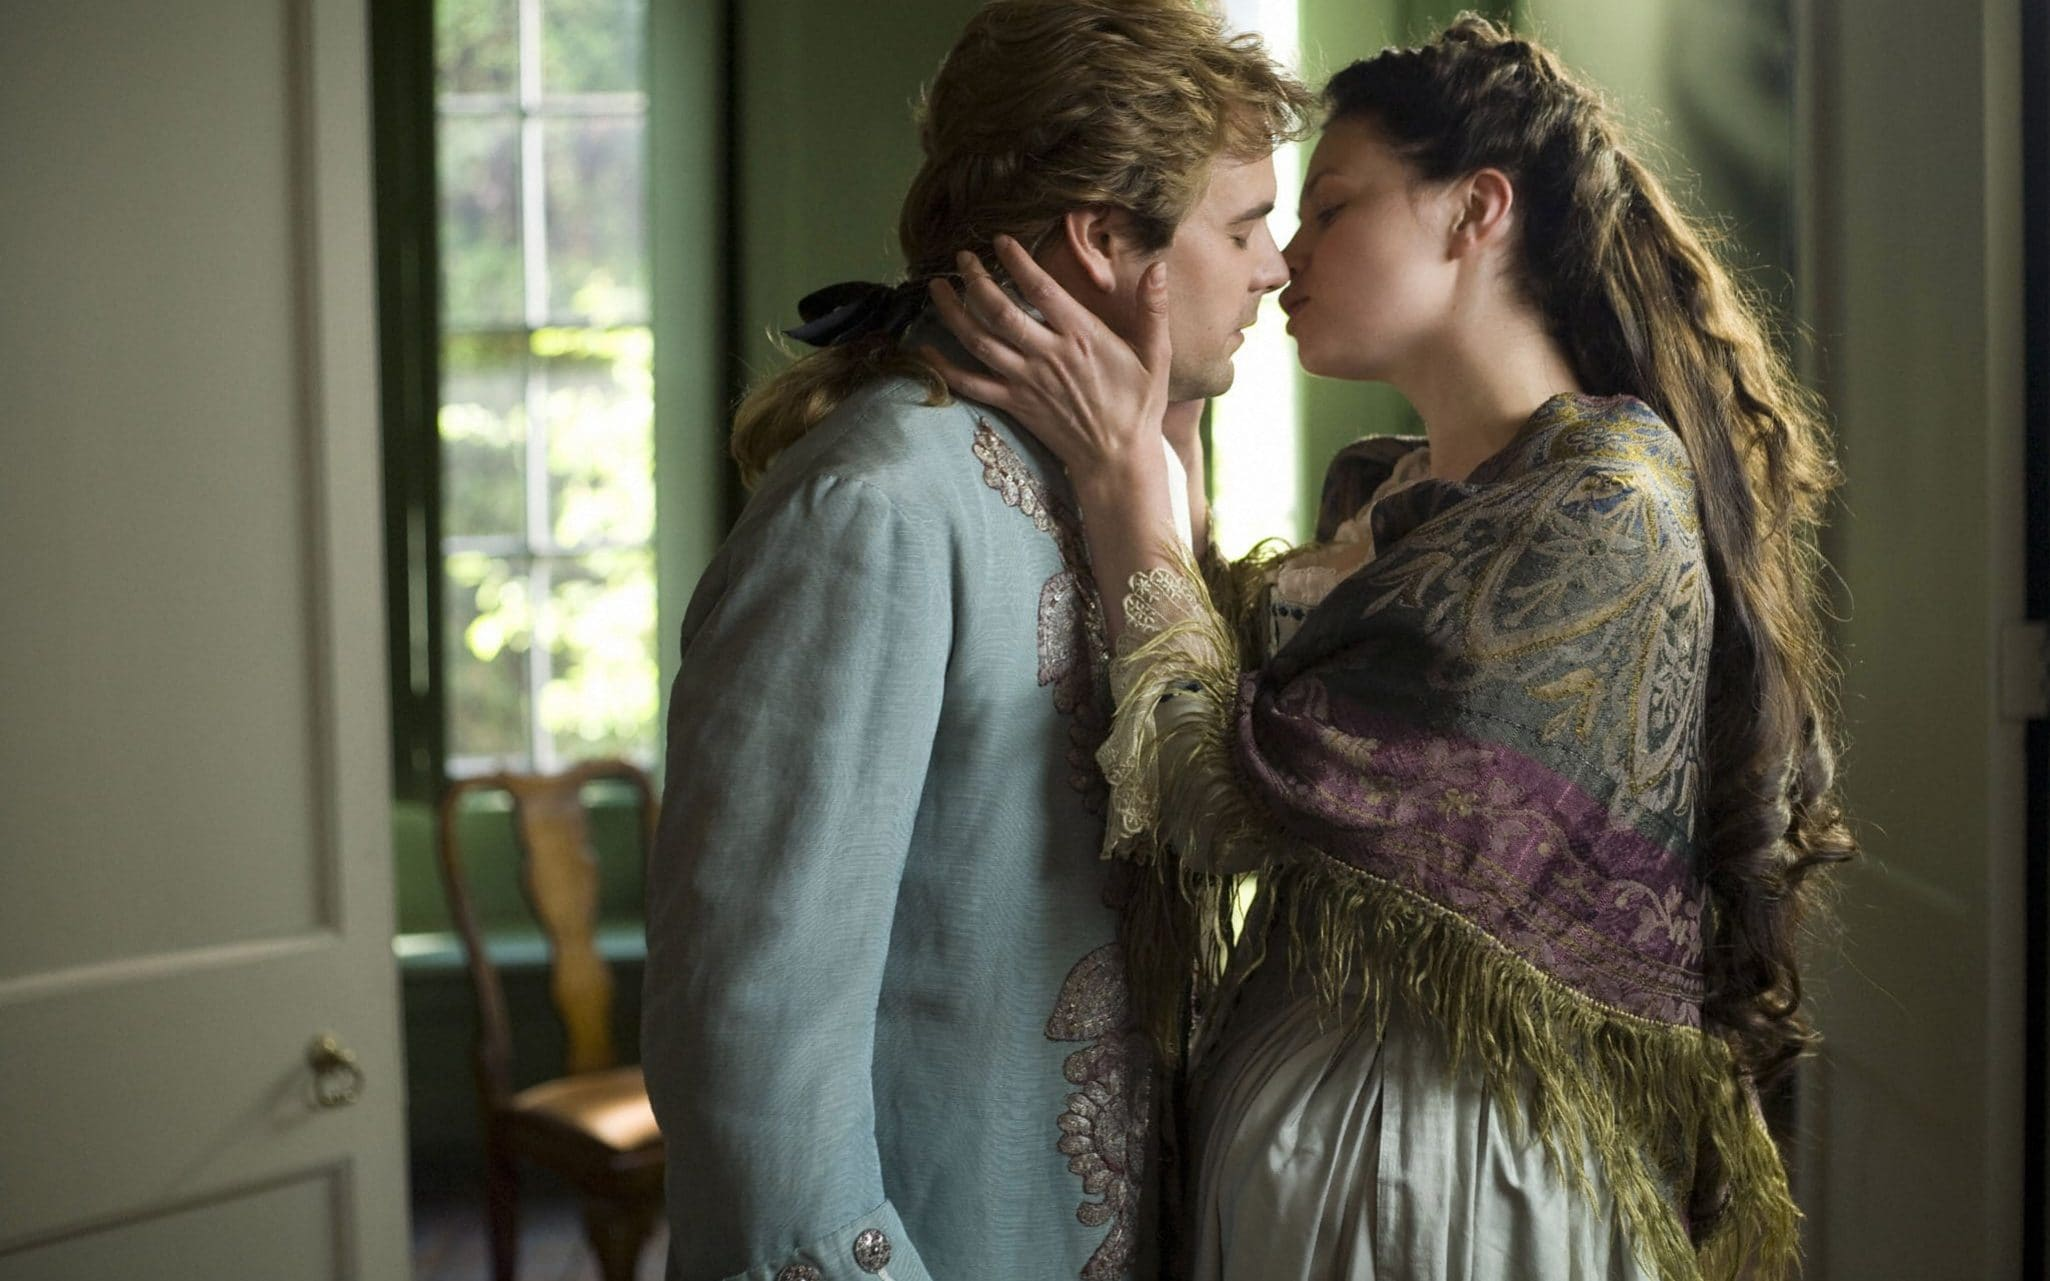 Steamy passion abounds in Fanny Hill, seen here in the adaptation for BBC Four